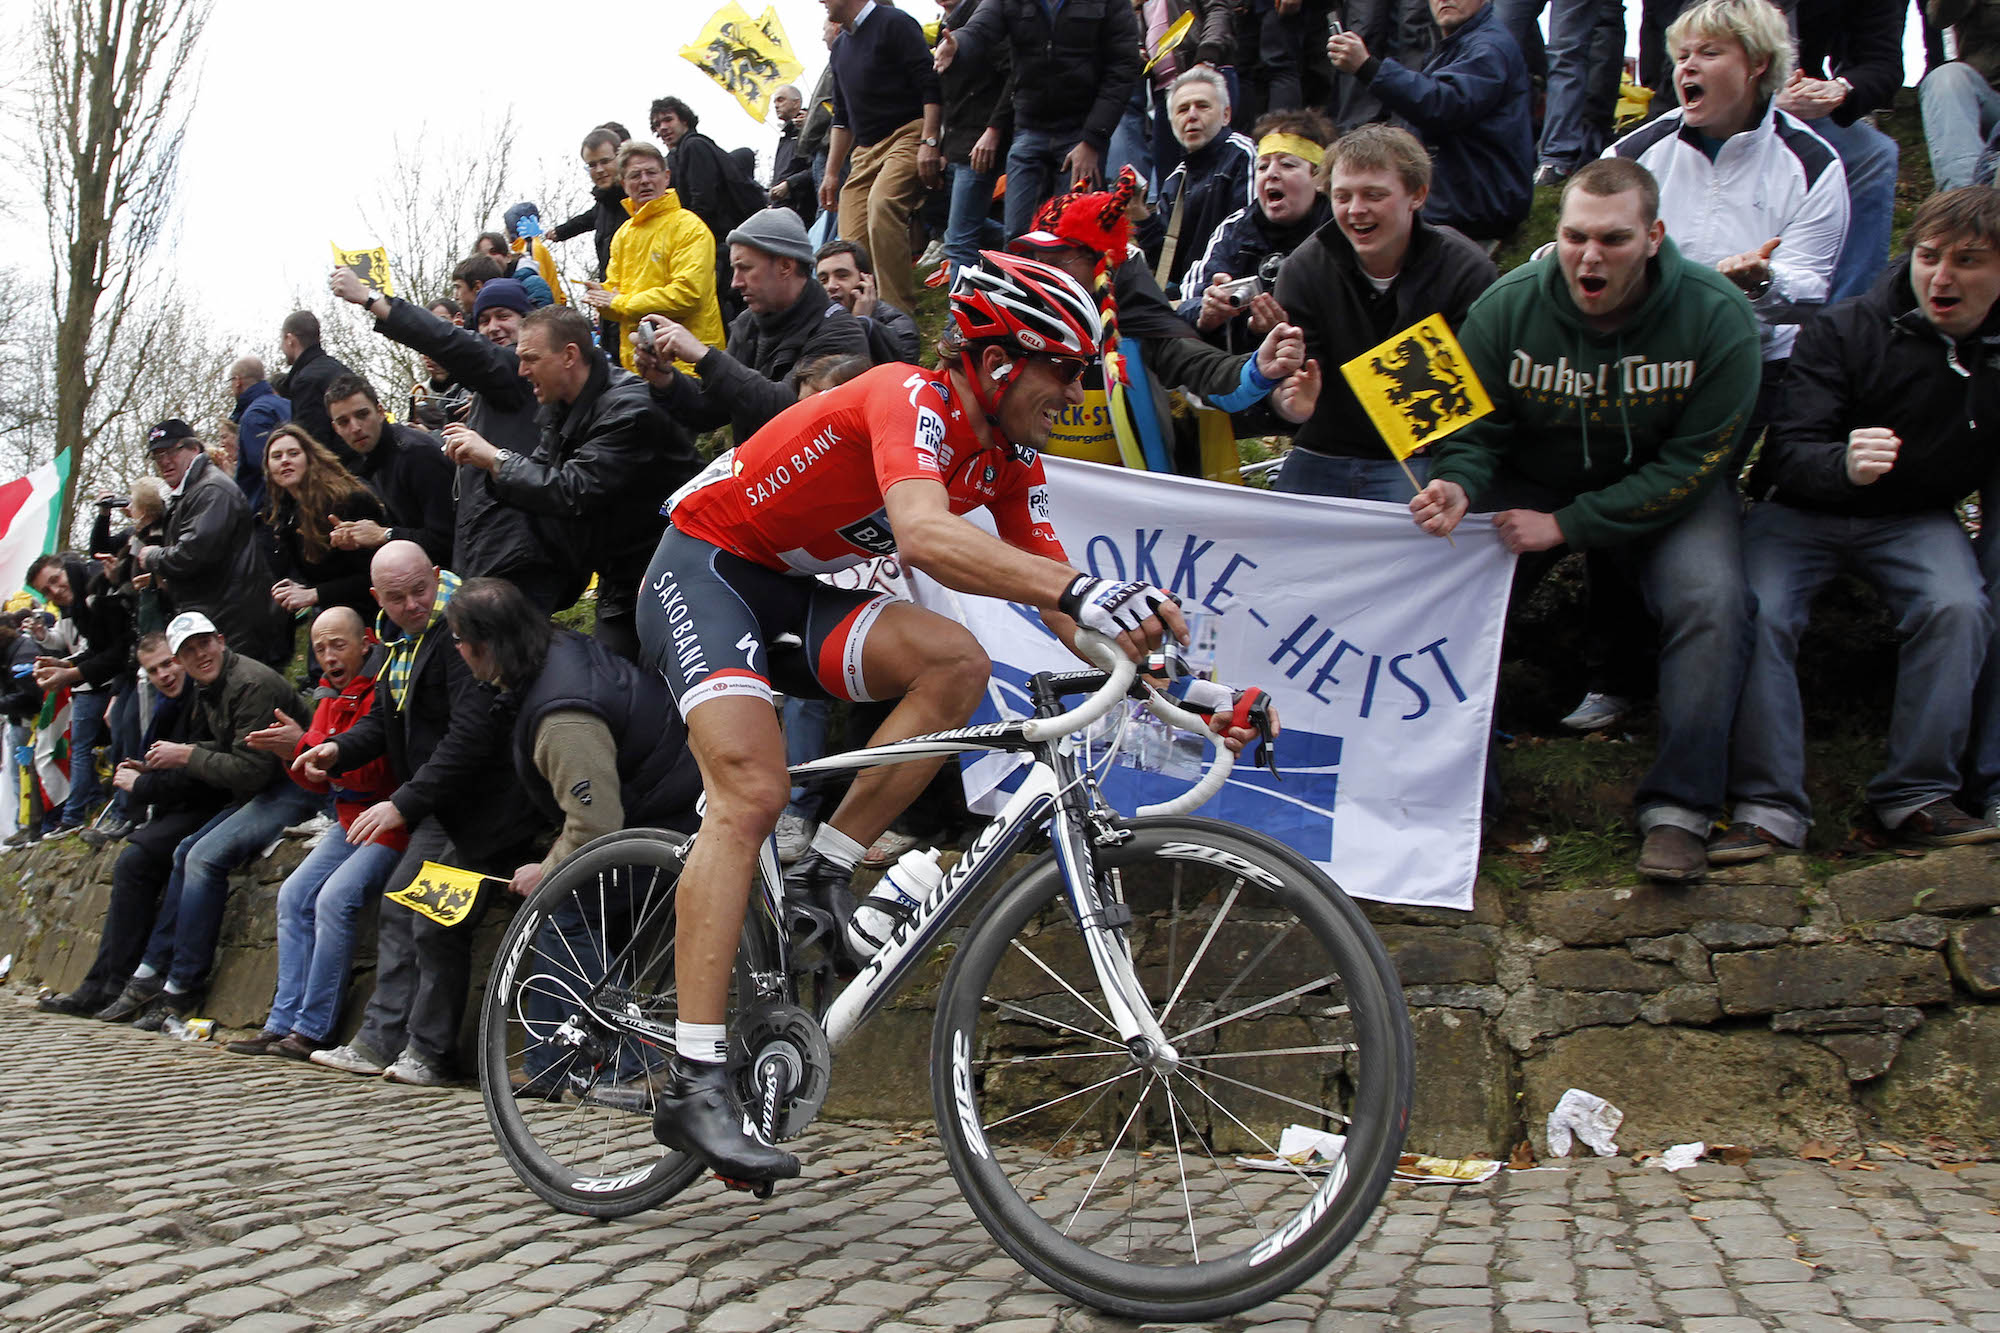 Fabian Cancellara: 'Motor allegations hurt, but I didn't need to prove anything to anyone'